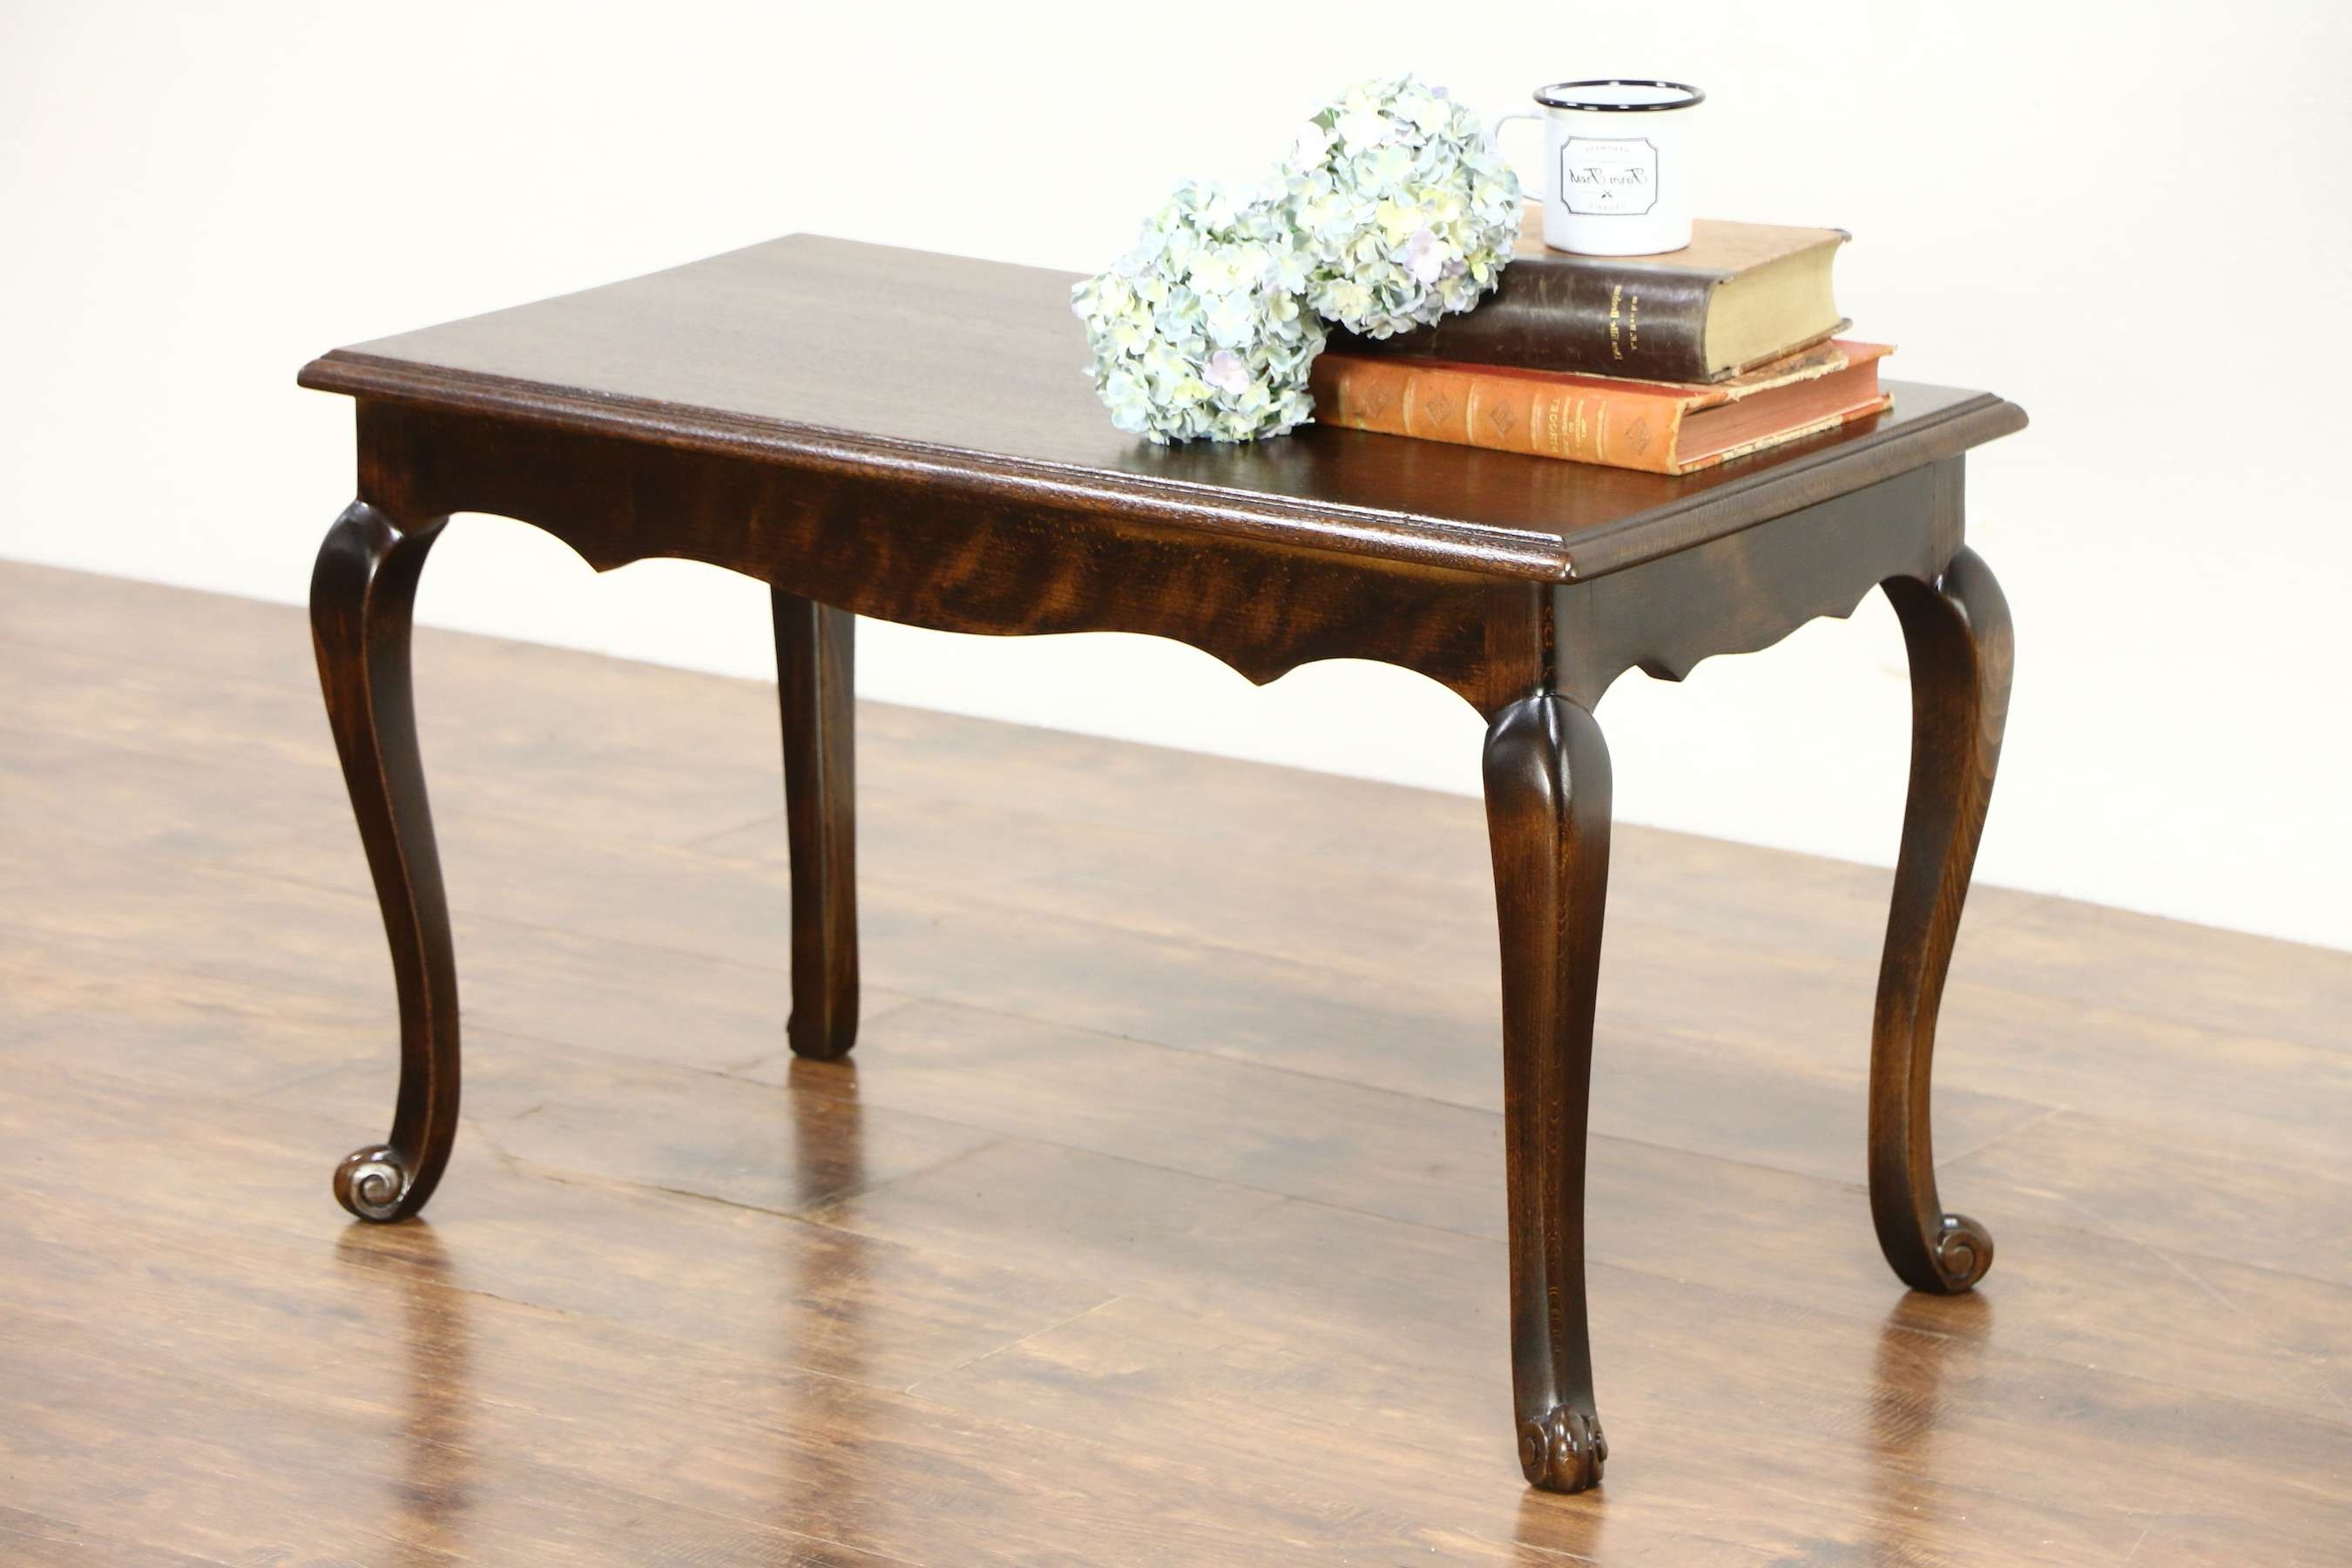 Scandinavian 1930's Vintage Bench Or Coffee Table, Oak & Beech In Most Recent Beech Coffee Tables (View 15 of 20)